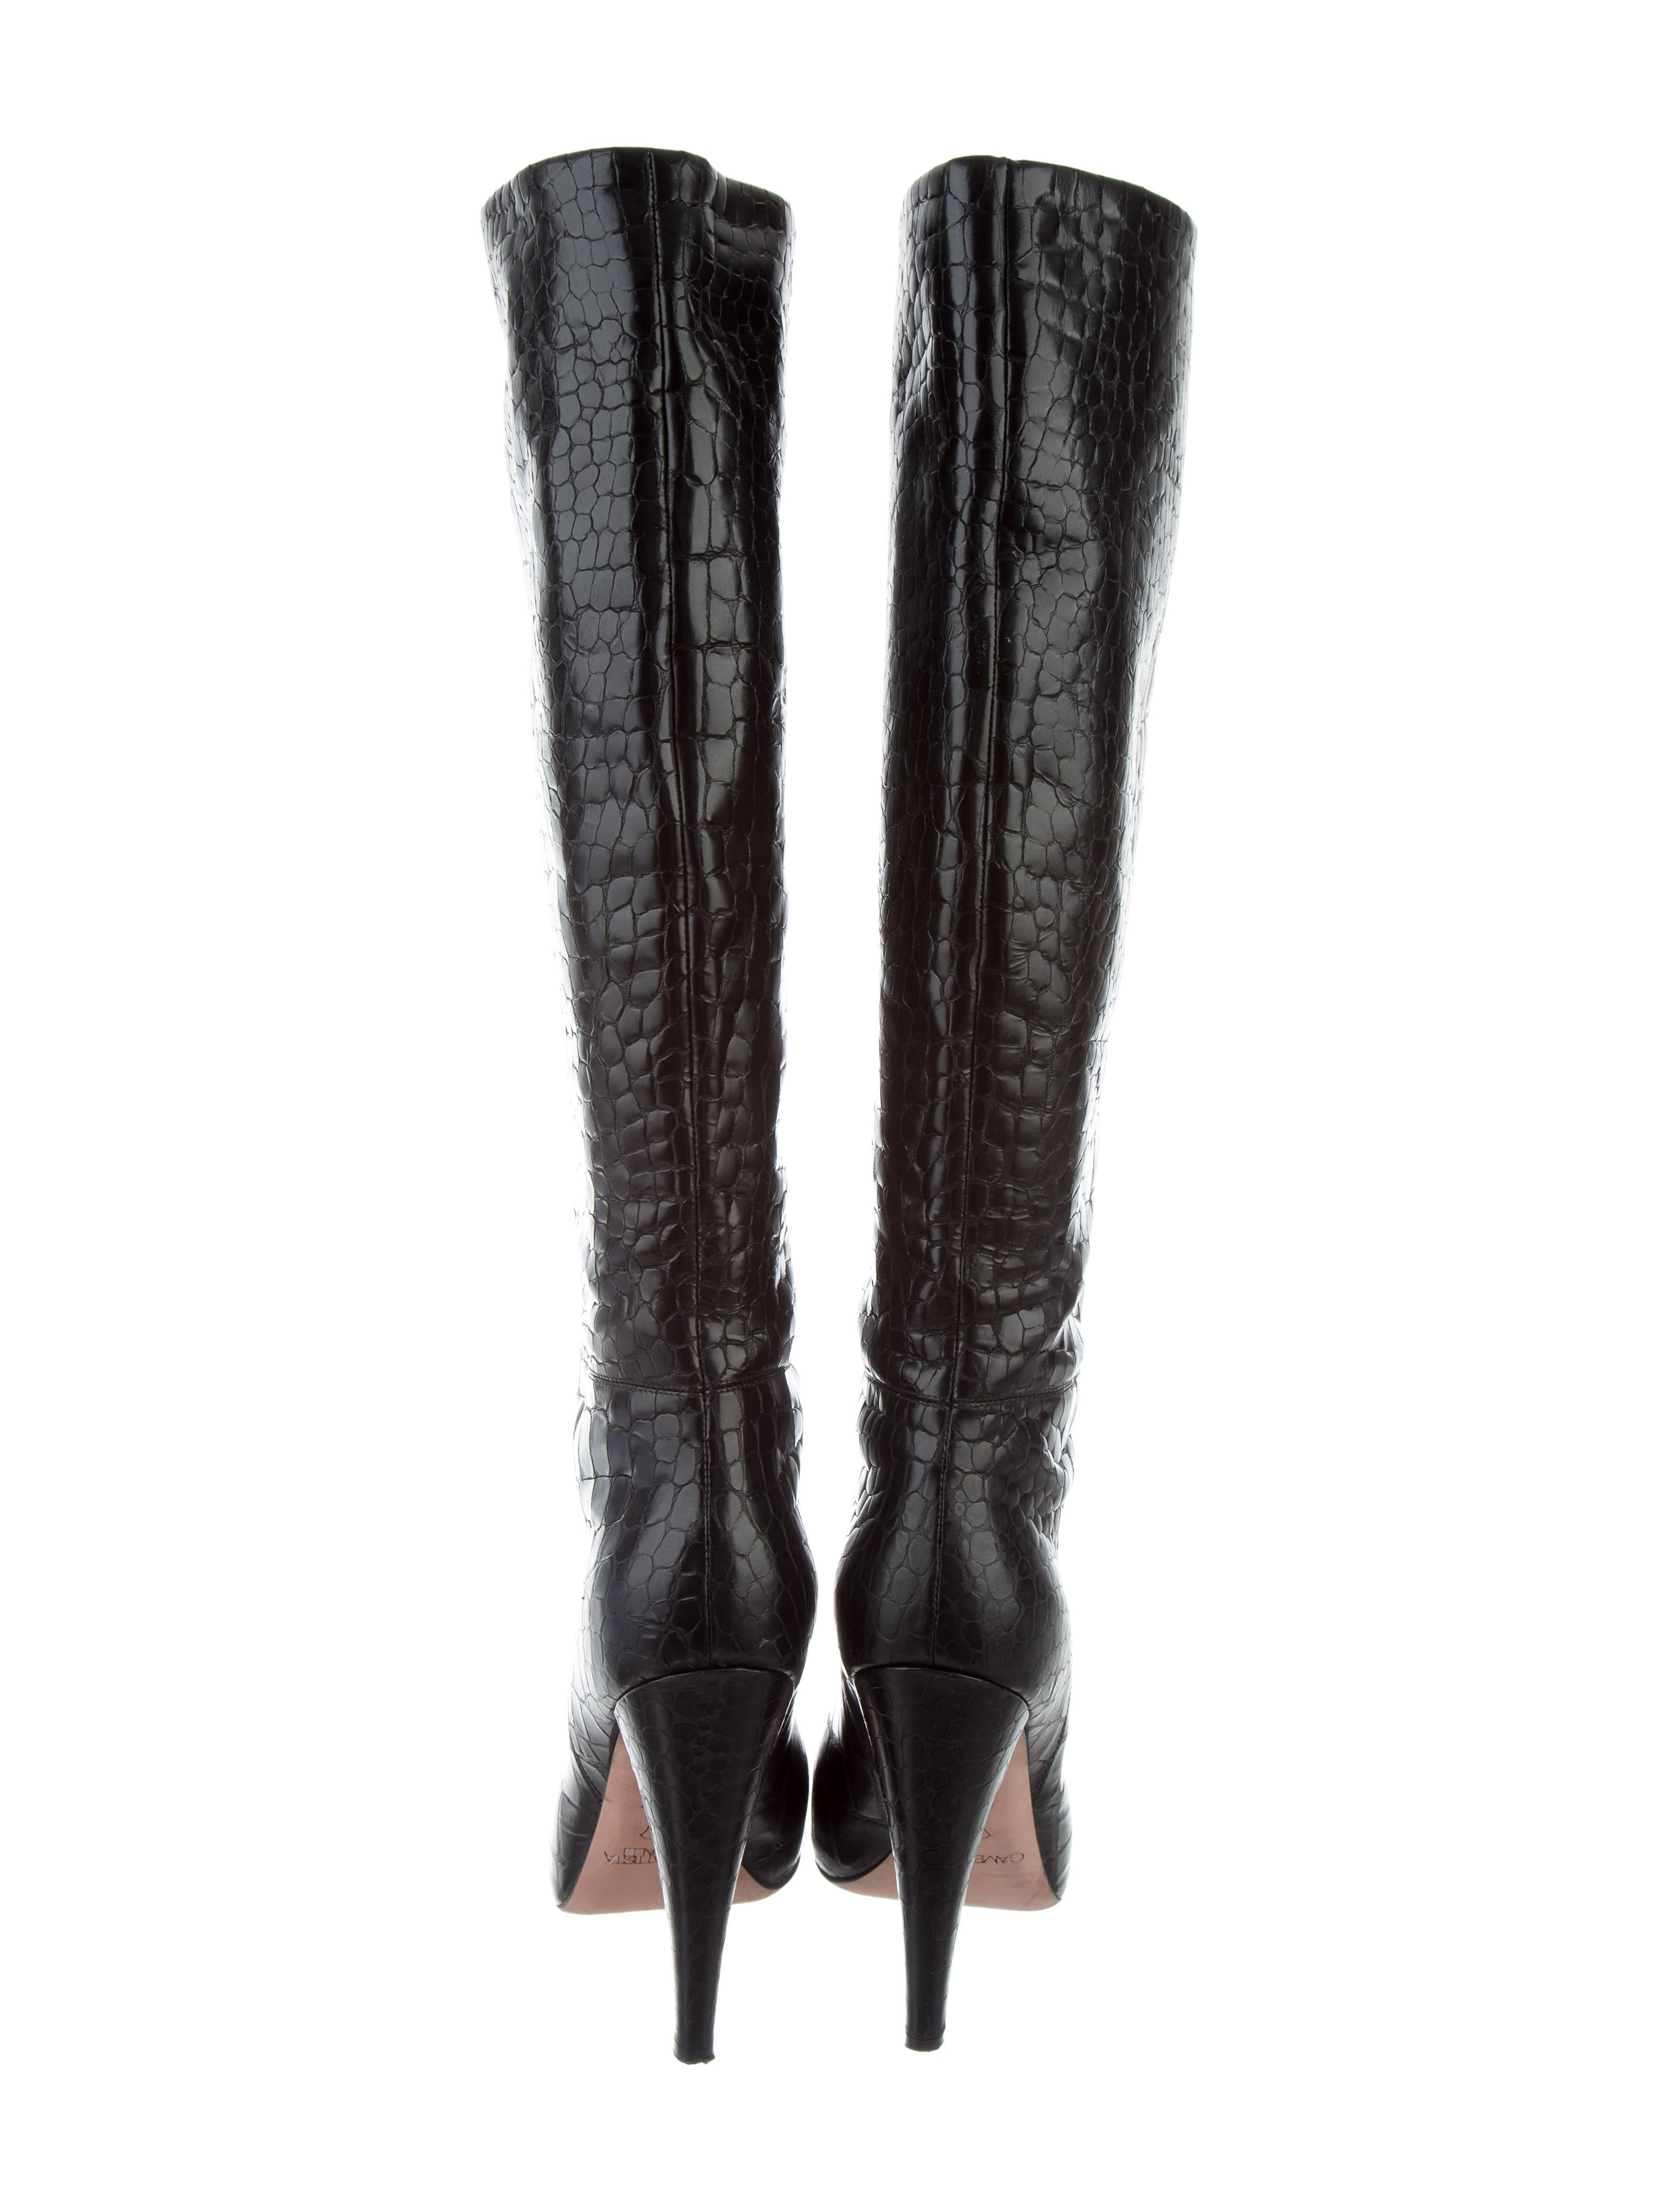 discounts for sale Giambattista Valli Embossed Leather Boots sale shop discount genuine outlet pay with visa 1qA46pqUG